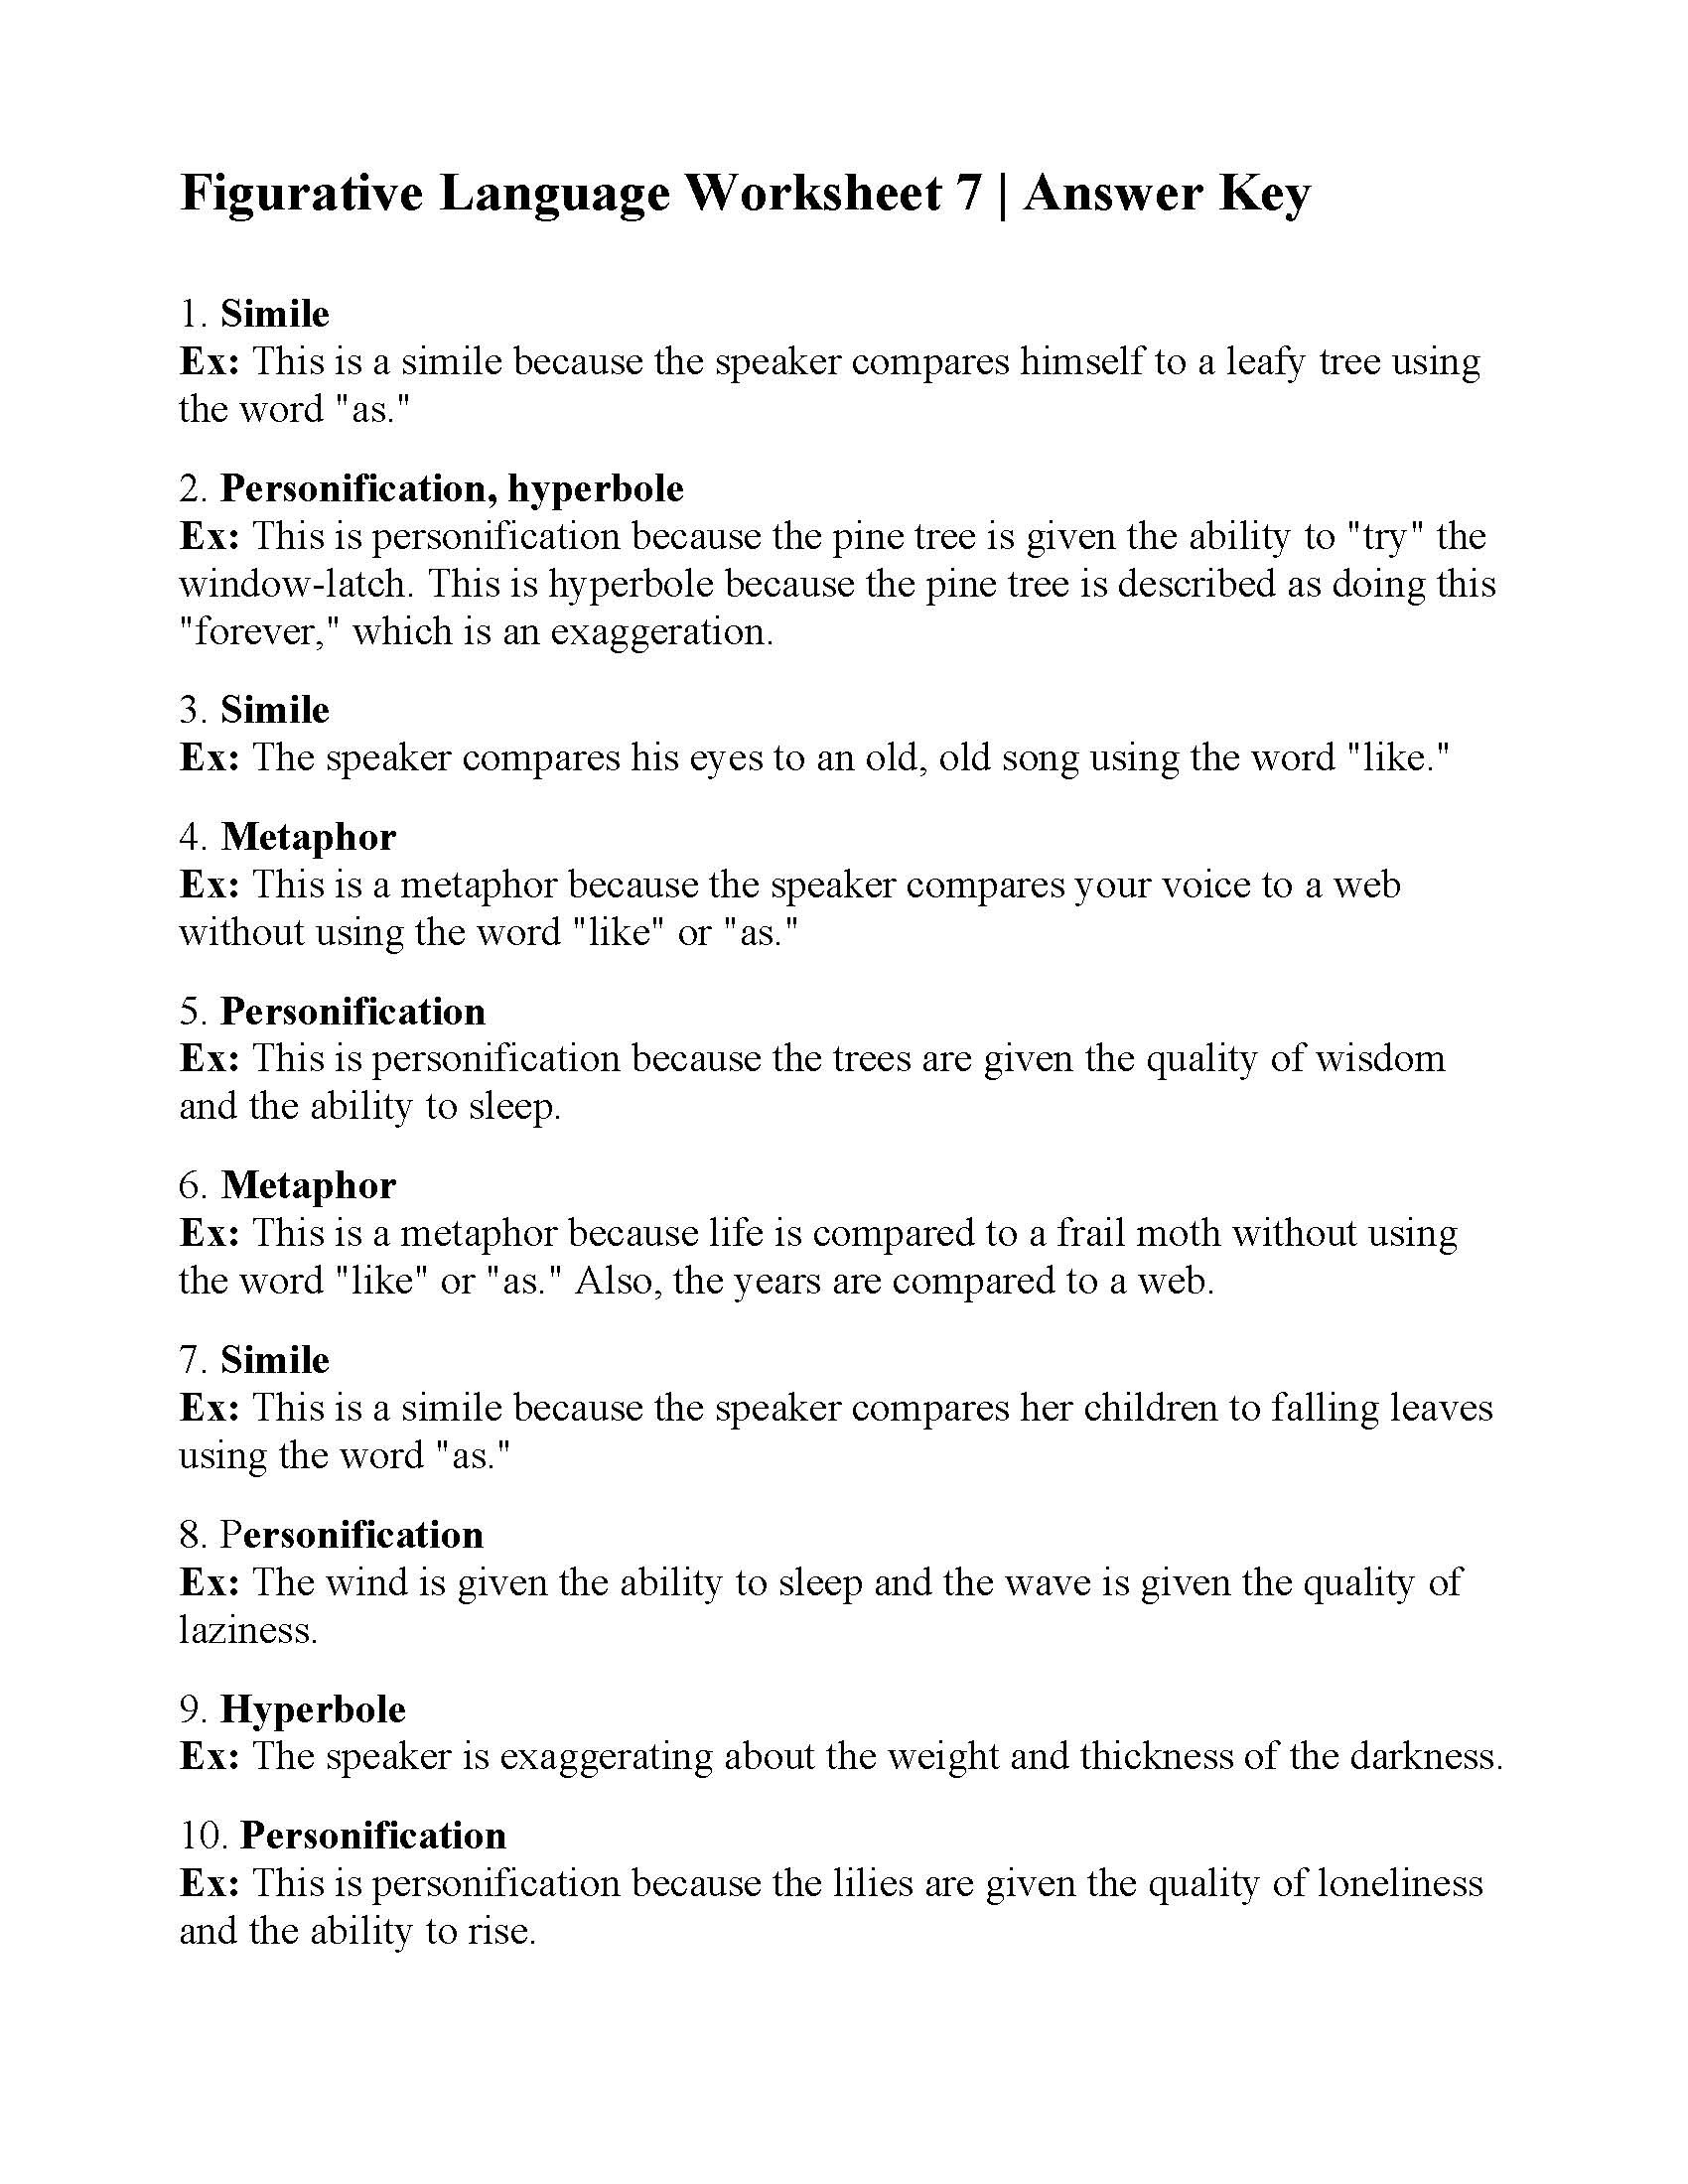 Figurative Language Worksheet 5th Grade Figurative Language Worksheet Answers Printable Worksheets